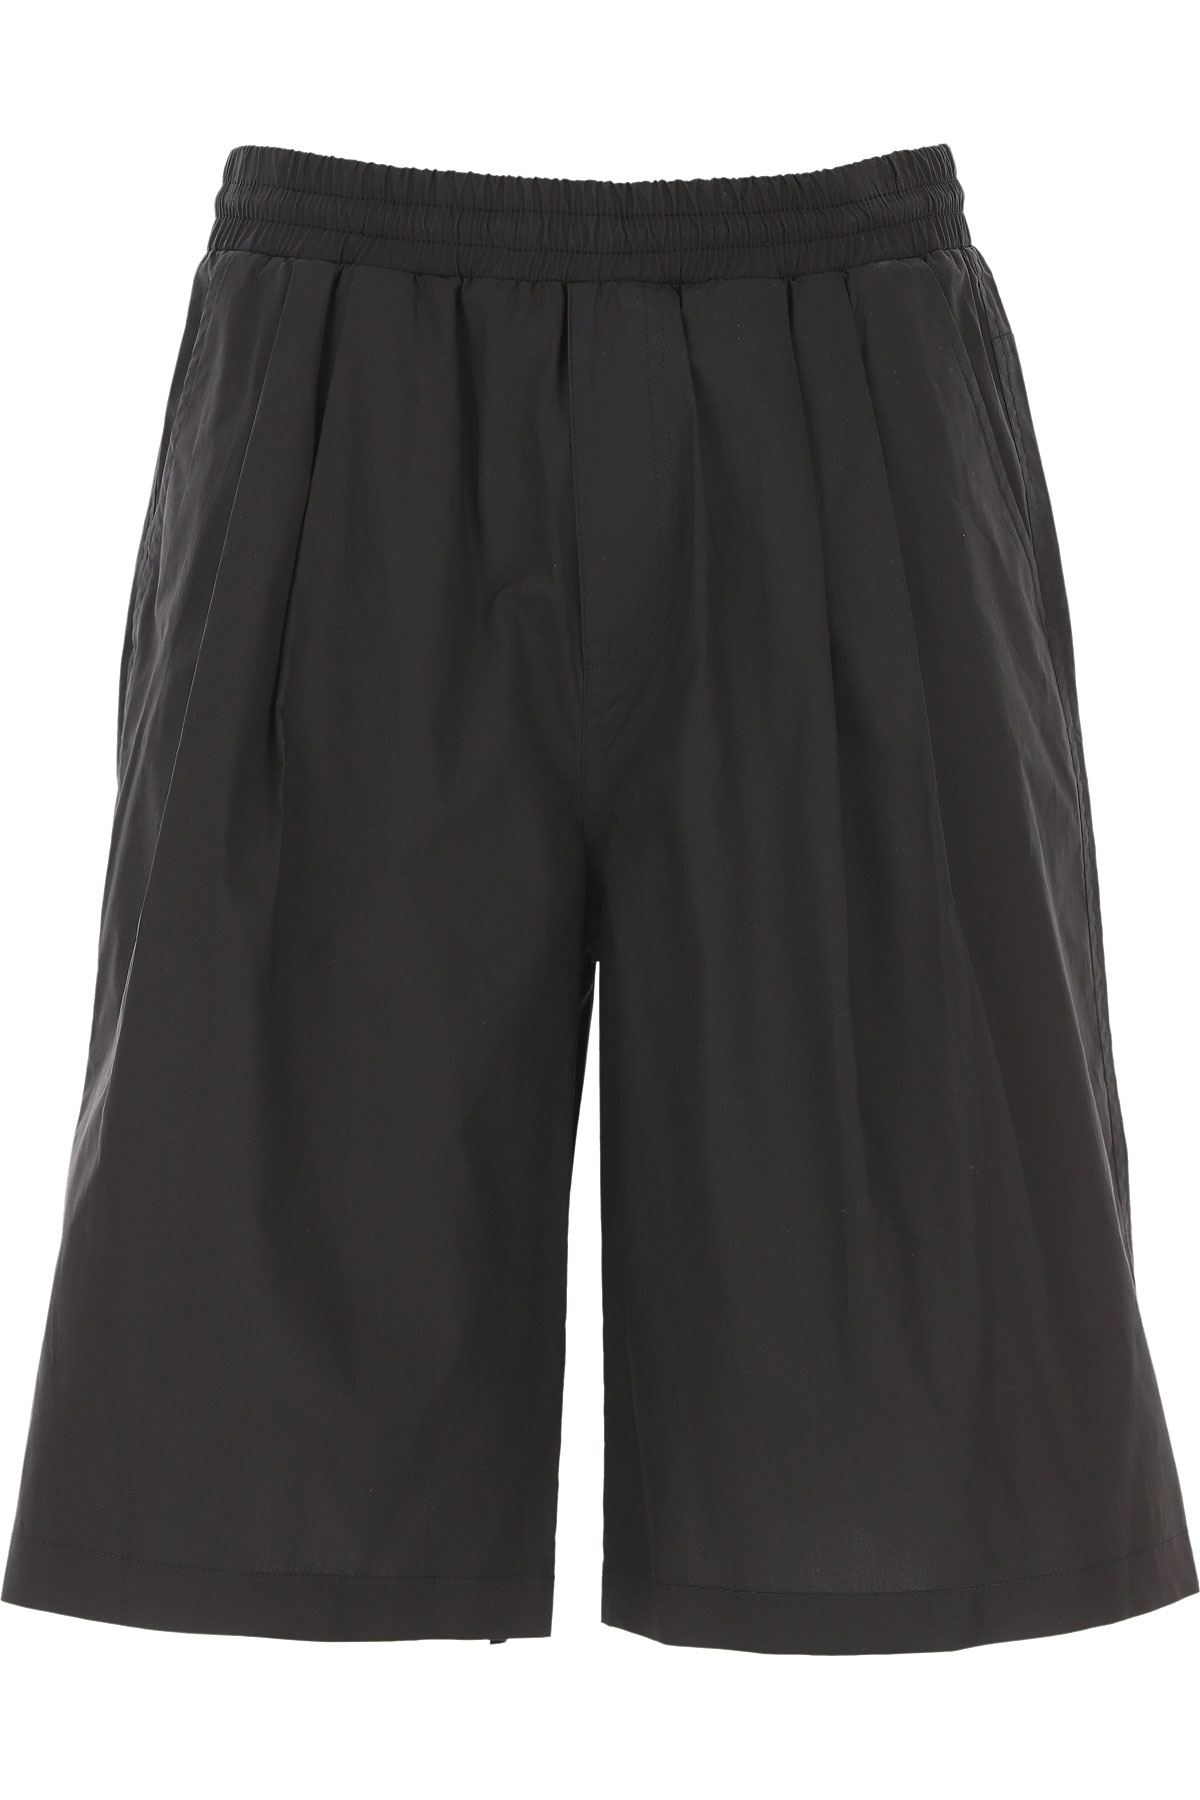 Alexander McQueen McQ Shorts for Men On Sale, Black, Cotton, 2019, 30 32 34 36